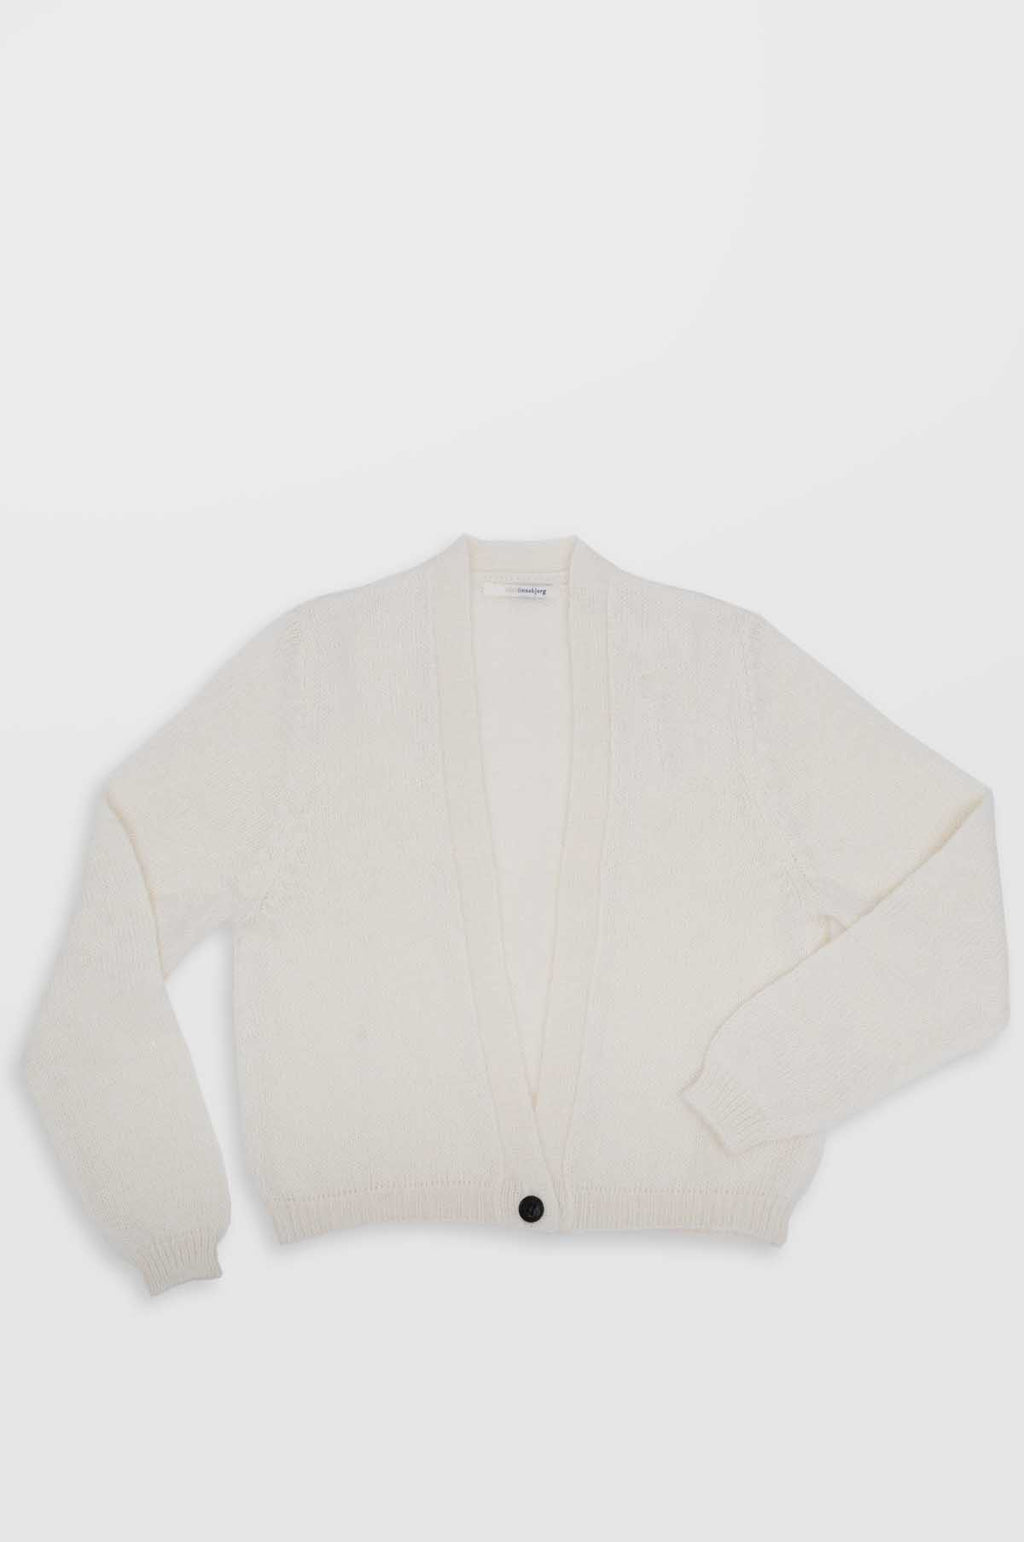 Celine Knitted Cardigan in Off White